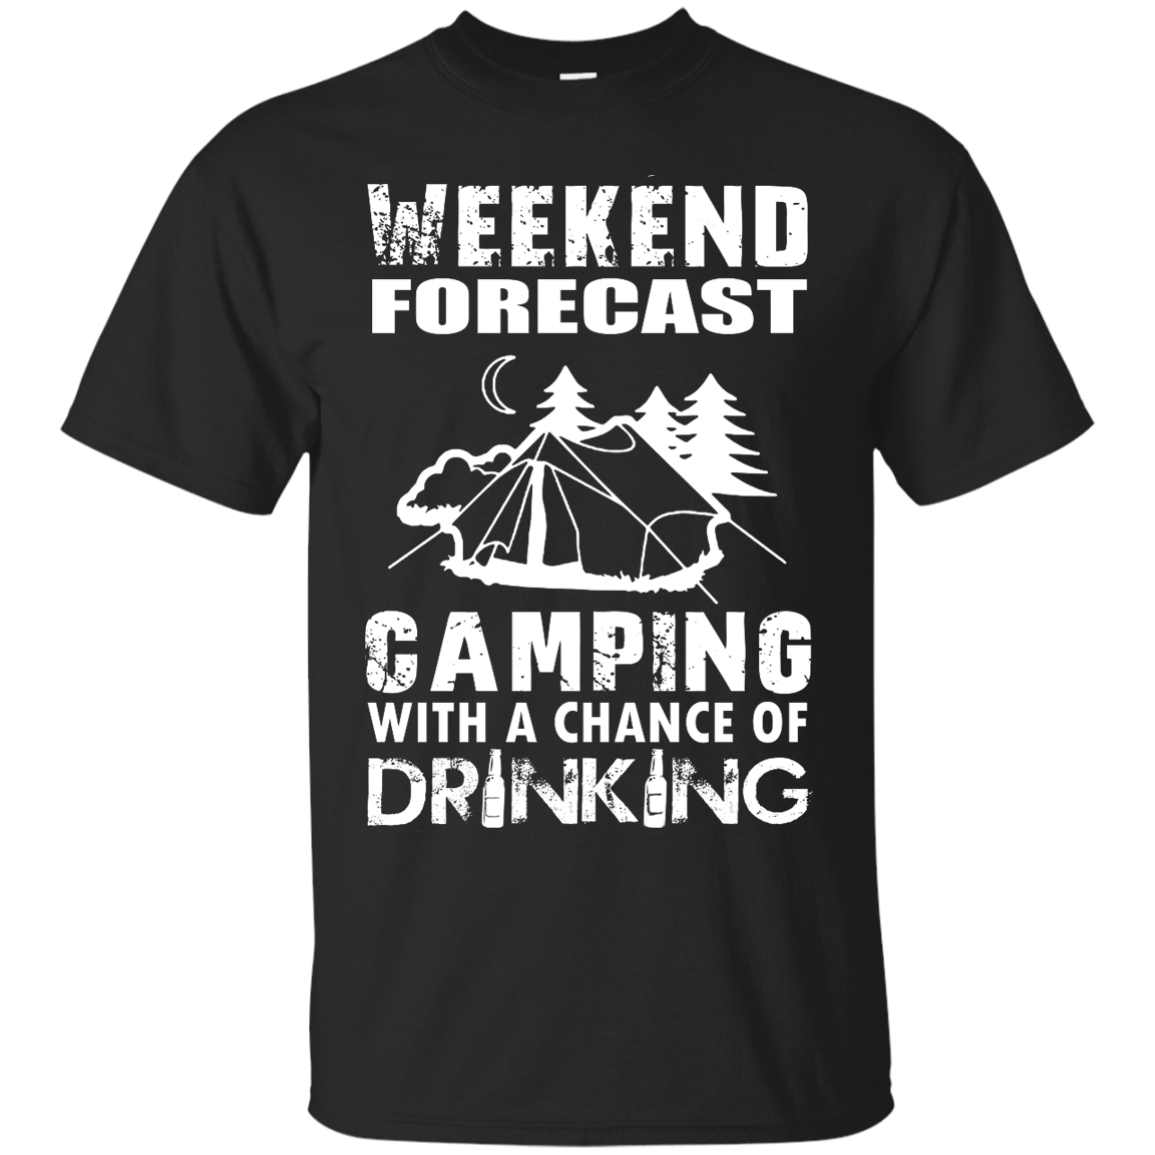 e26fdba0c Weekend Forecast, Camping With A Chance Of Drinking t-shirt, hoodies